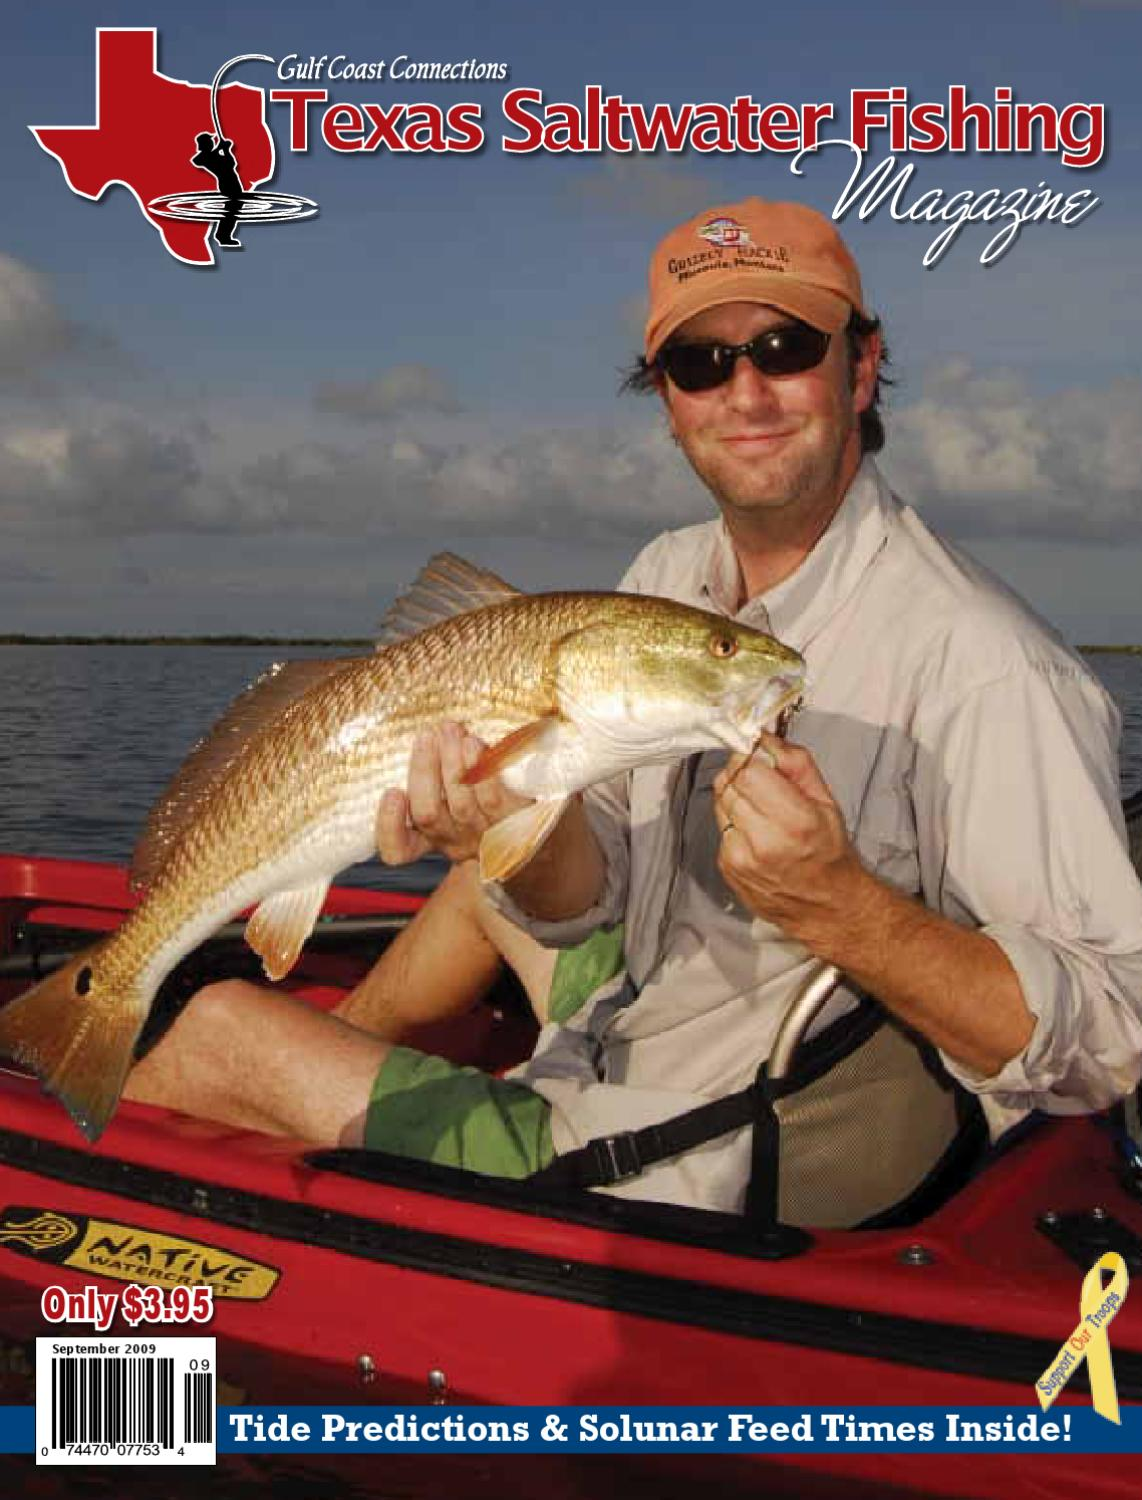 September 2009 by texas salwater fishing magazine issuu for Texas saltwater fishing magazine